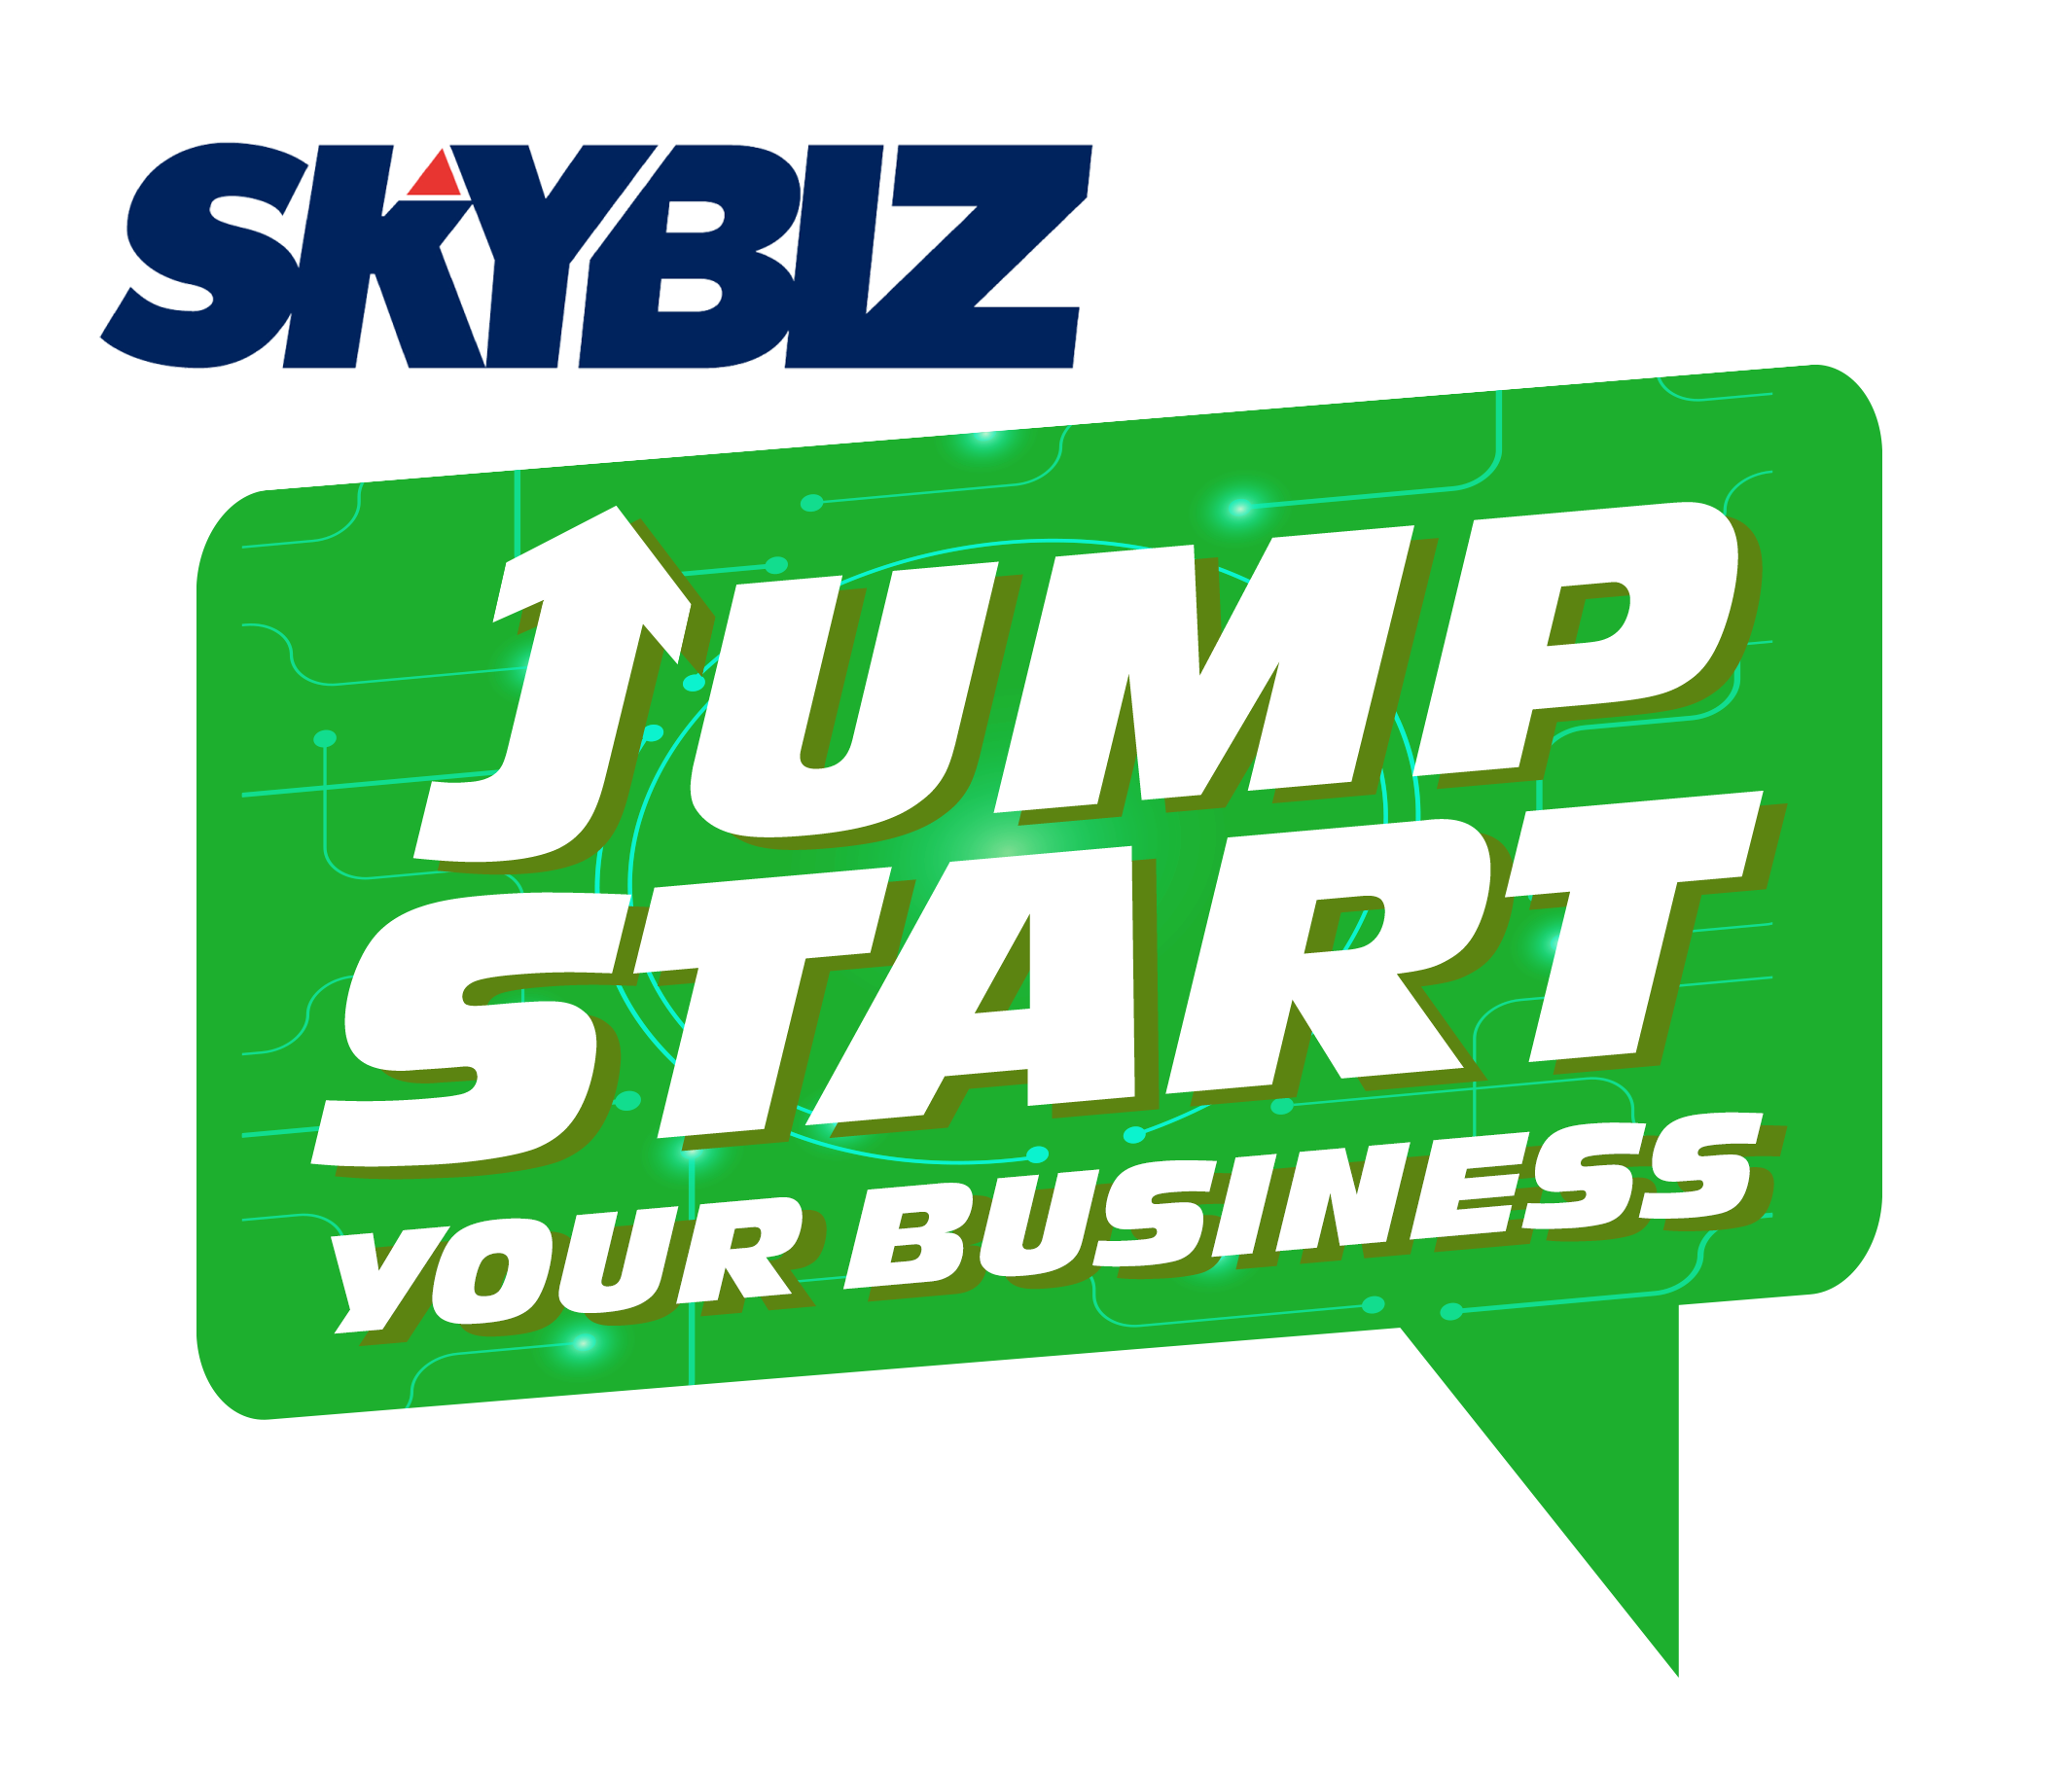 SKYBIZ launches campaign to help jumpstart businesses